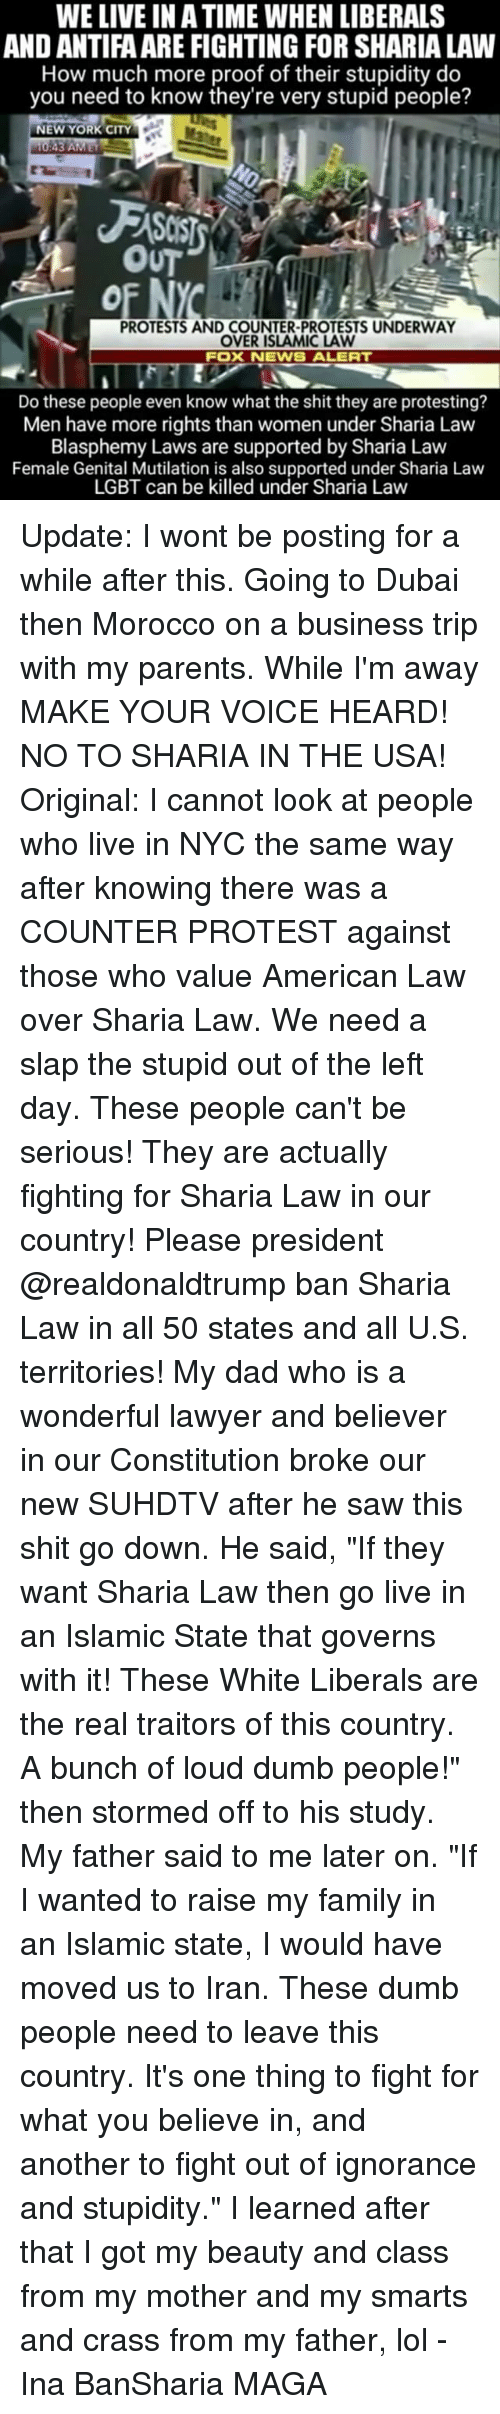 """Dad, Dumb, and Family: WE LIVE IN ATIME WHEN LIBERALS  AND ANTIFAARE FIGHTING FOR SHARIA LAW  How much more proof of their stupidity do  you need to know they're very stupid people?  NEW YORK CITY  3 AM ET  OUT  PROTESTS AND COUNTER-PROTESTS UNDERWAY  OVER ISLAMIC LAW  FOX NEWS ALERT  Do these people even know what the shit they are protesting?  Men have more rights than women under Sharia Law  Blasphemy Laws are supported by Sharia Law  Female Genital Mutilation is also supported under Sharia Law  LGBT can be killed under Sharia Law Update: I wont be posting for a while after this. Going to Dubai then Morocco on a business trip with my parents. While I'm away MAKE YOUR VOICE HEARD! NO TO SHARIA IN THE USA! Original: I cannot look at people who live in NYC the same way after knowing there was a COUNTER PROTEST against those who value American Law over Sharia Law. We need a slap the stupid out of the left day. These people can't be serious! They are actually fighting for Sharia Law in our country! Please president @realdonaldtrump ban Sharia Law in all 50 states and all U.S. territories! My dad who is a wonderful lawyer and believer in our Constitution broke our new SUHDTV after he saw this shit go down. He said, """"If they want Sharia Law then go live in an Islamic State that governs with it! These White Liberals are the real traitors of this country. A bunch of loud dumb people!"""" then stormed off to his study. My father said to me later on. """"If I wanted to raise my family in an Islamic state, I would have moved us to Iran. These dumb people need to leave this country. It's one thing to fight for what you believe in, and another to fight out of ignorance and stupidity."""" I learned after that I got my beauty and class from my mother and my smarts and crass from my father, lol - Ina BanSharia MAGA"""